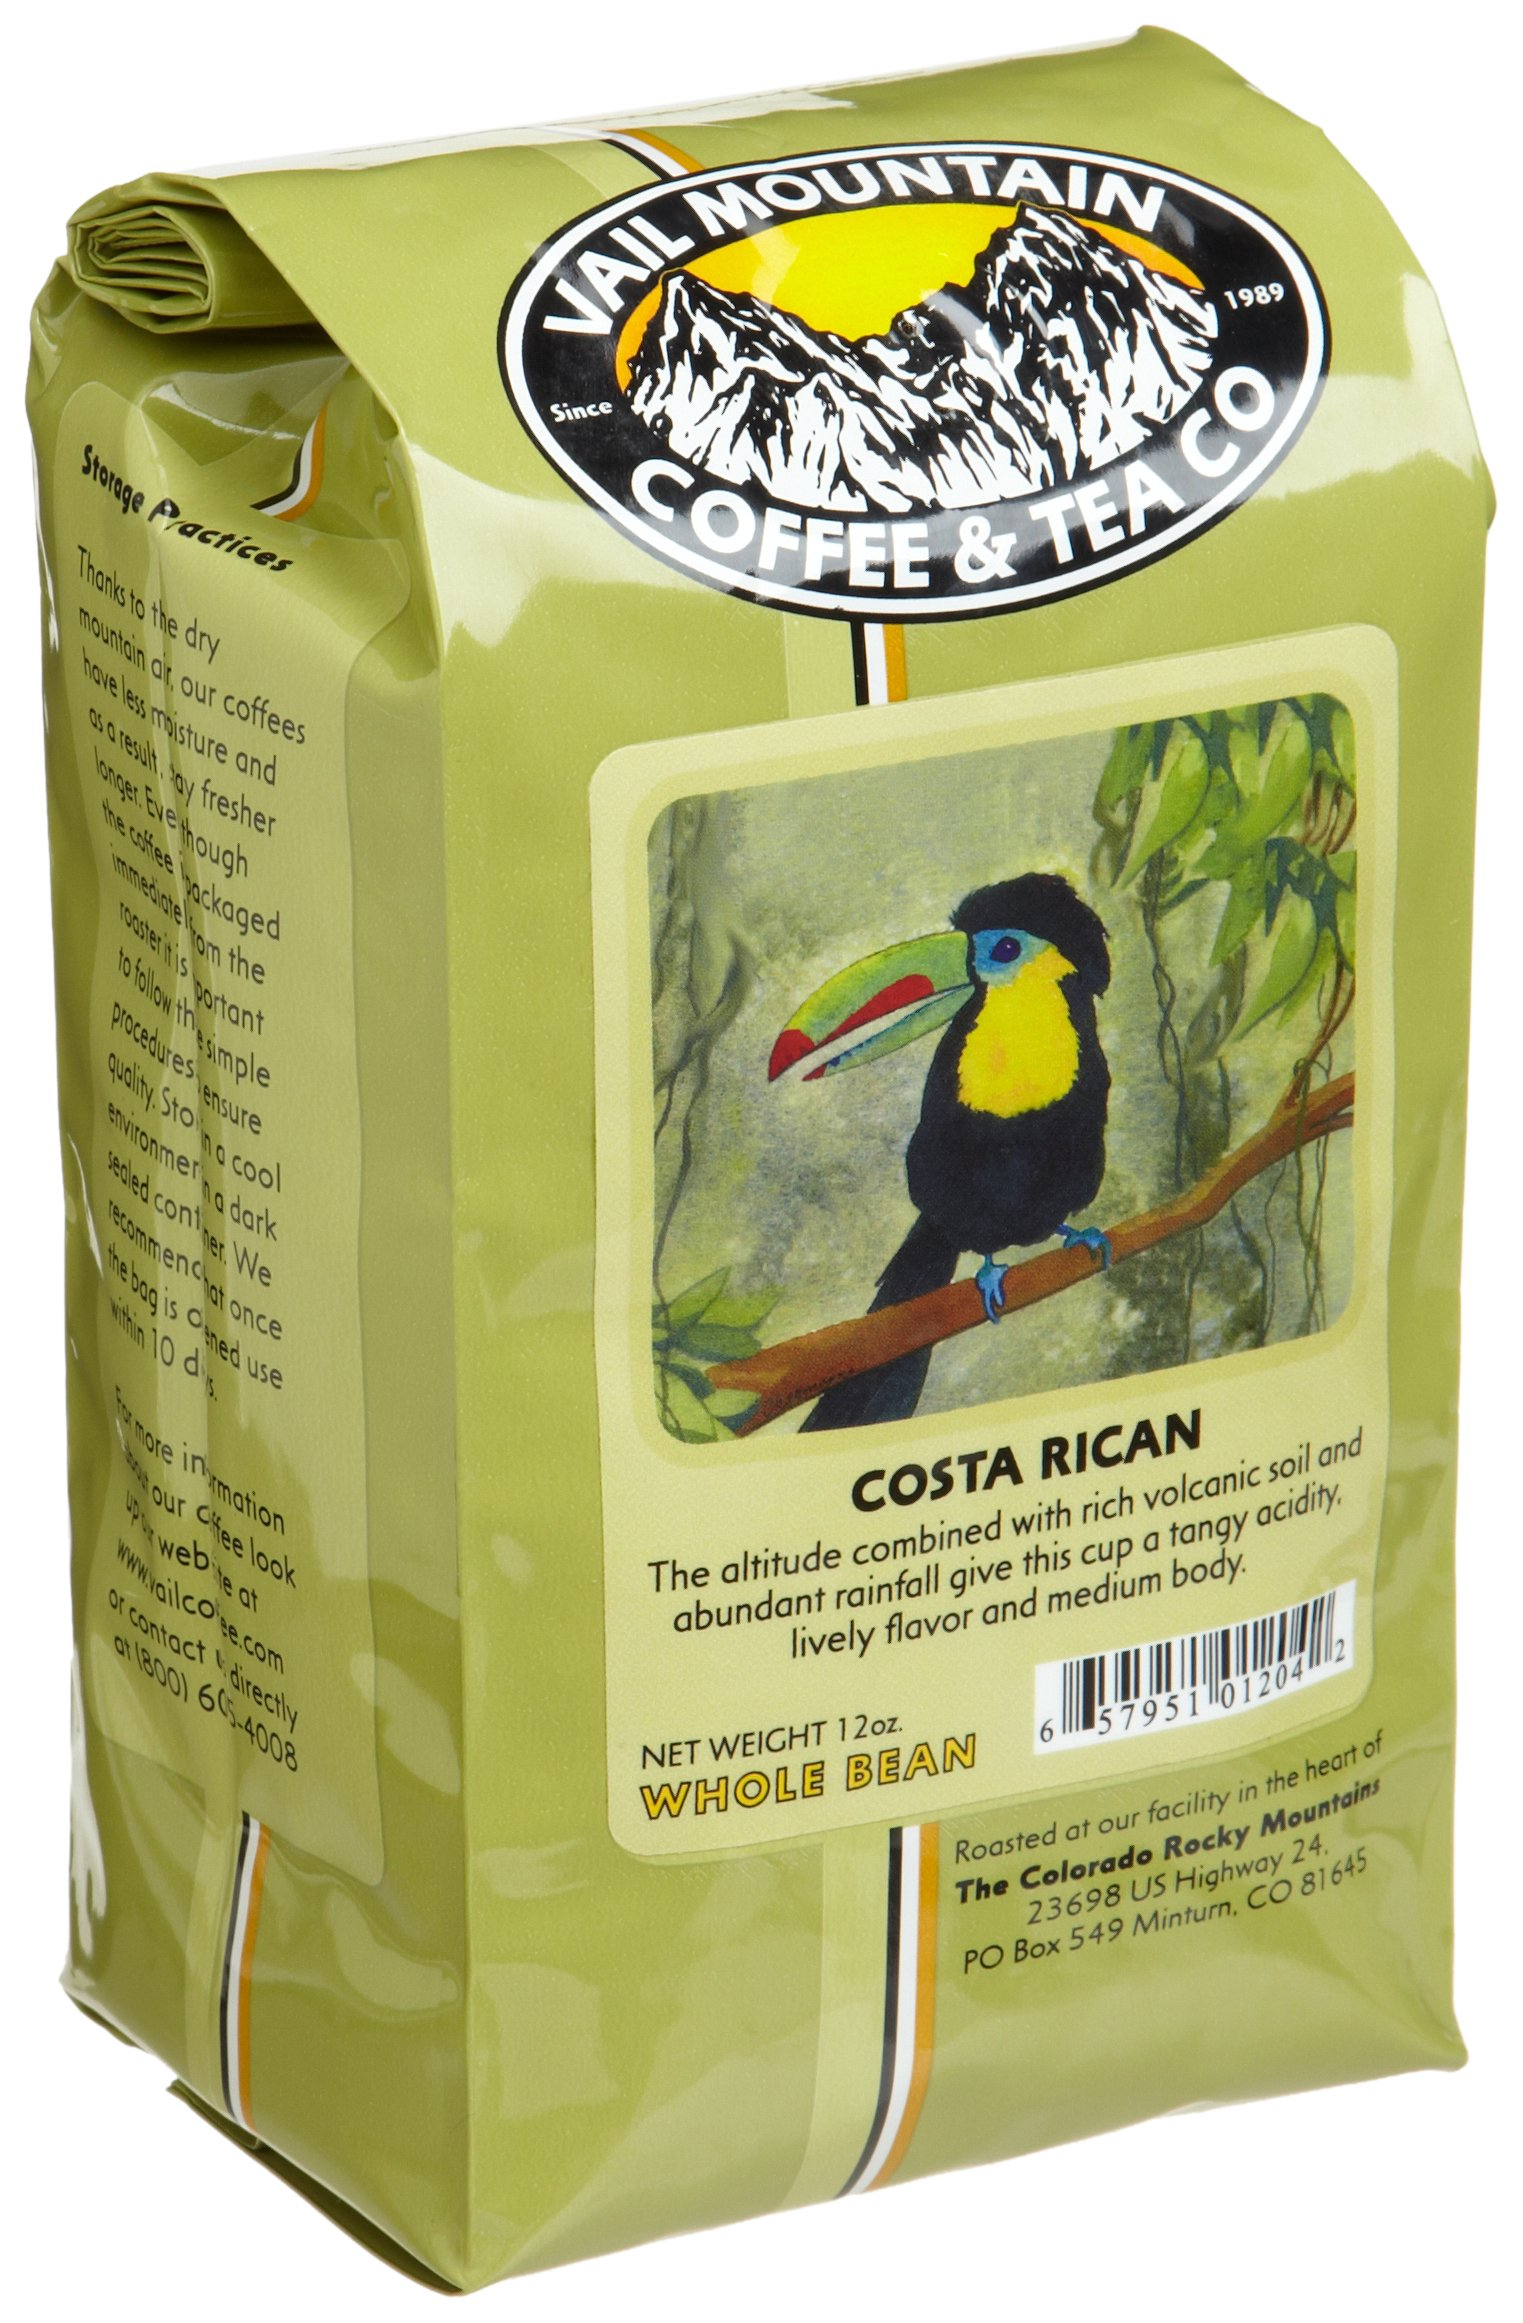 Vail Mountain Coffee & Tea Costa Rican Whole Bean Coffee, 12-Ounce Bags (Pack of 3) by Vail Mountain Coffee & Tea